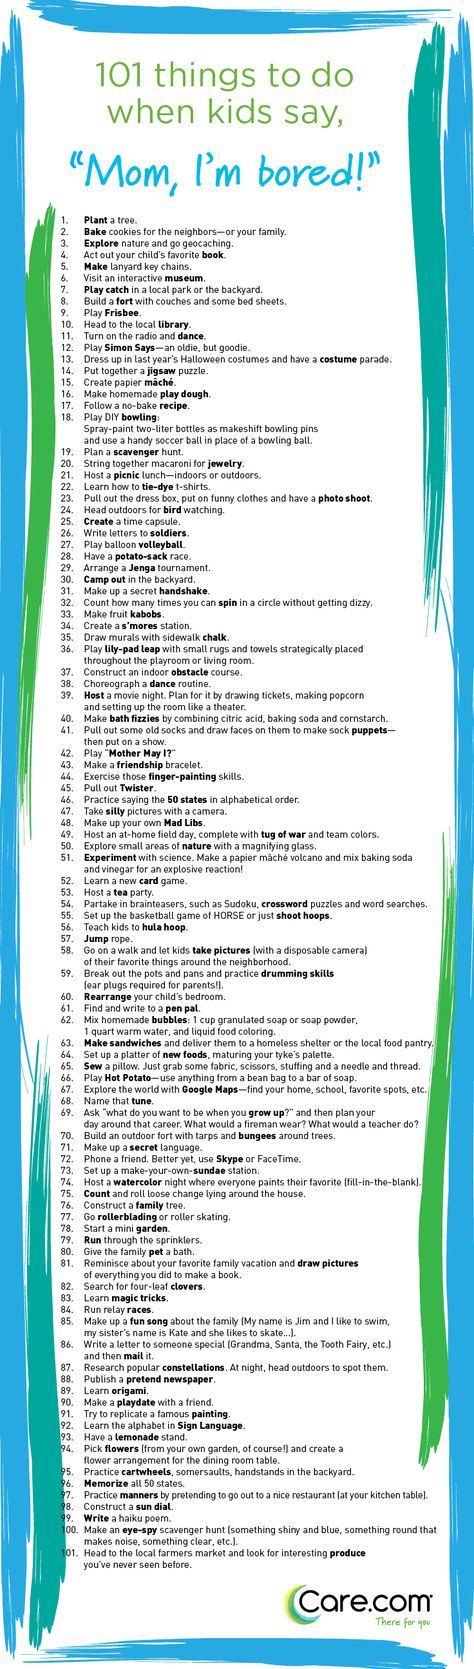 30 things to do when kids say 'I'm bored'